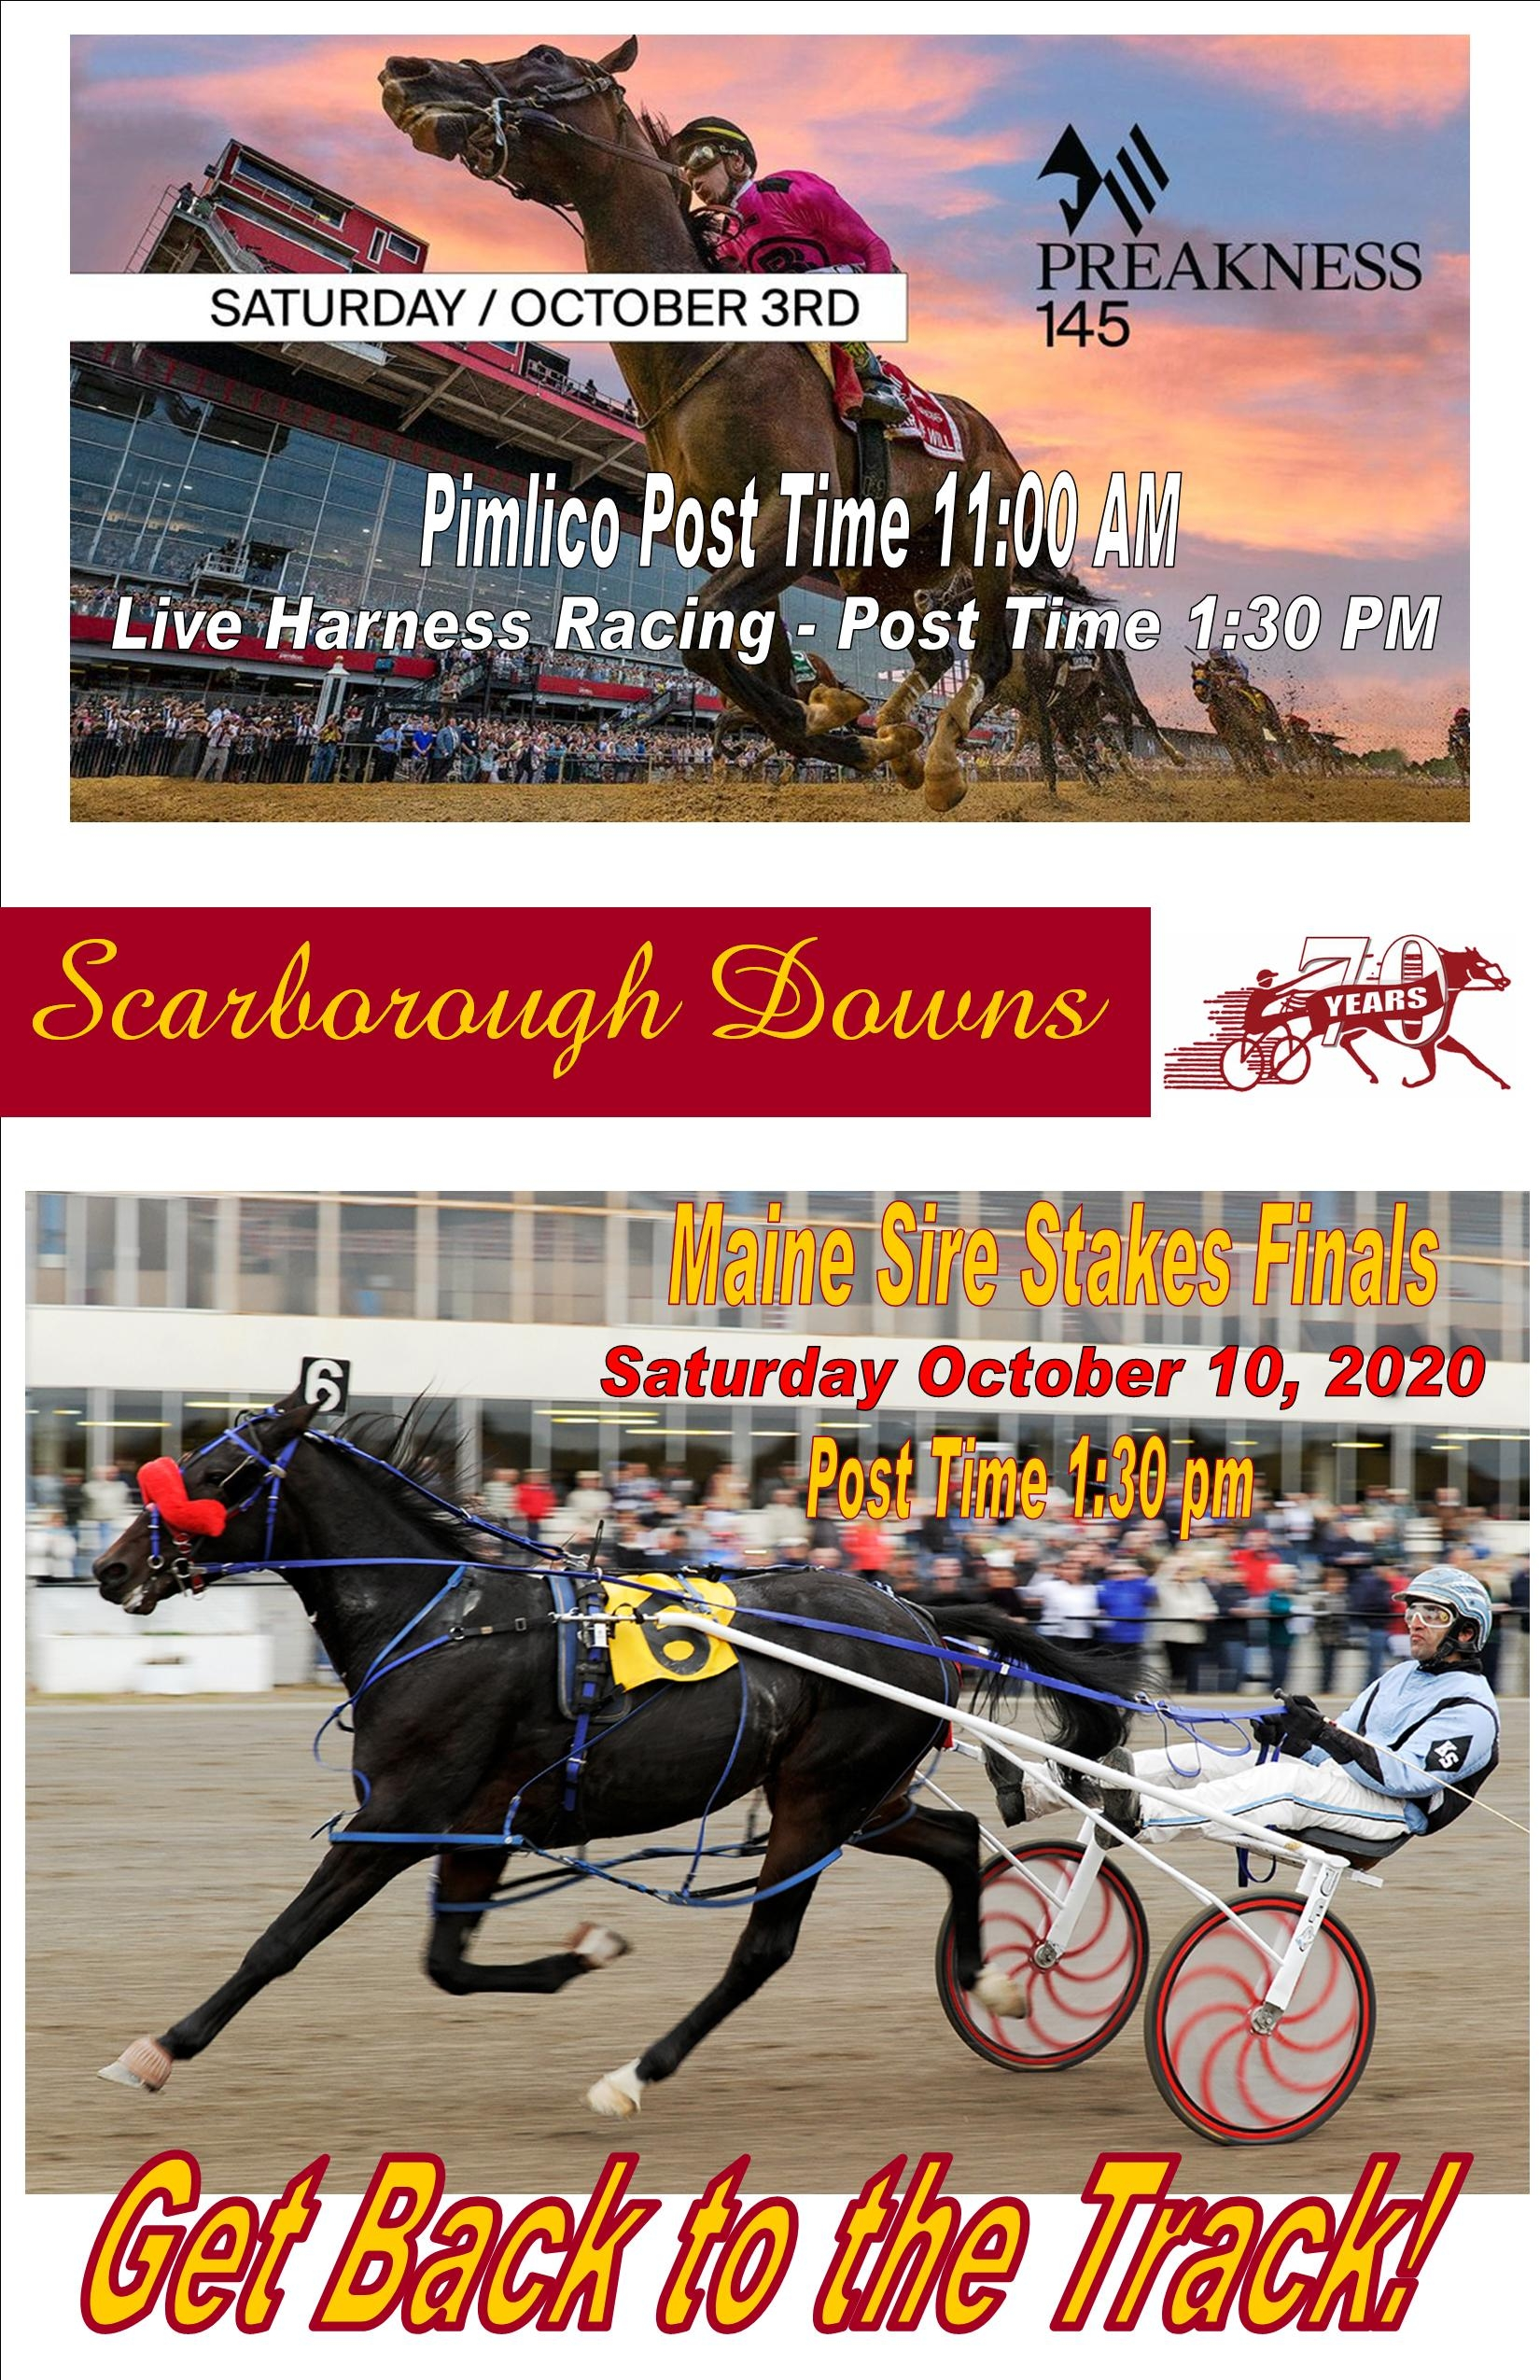 Scarborough Downs Maine S Best Bet Since 1950